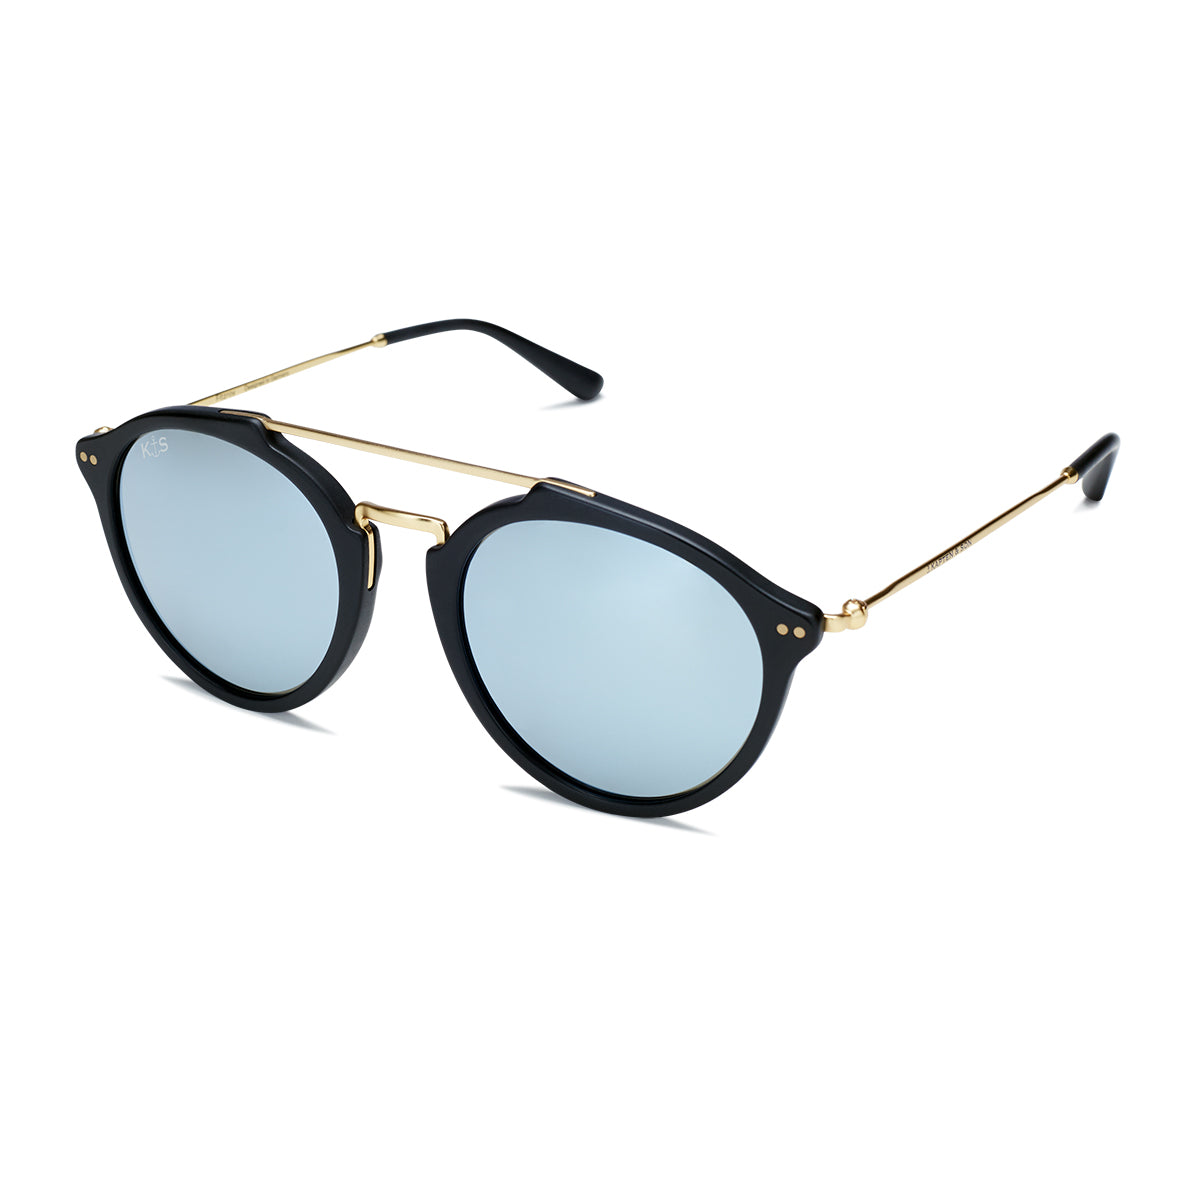 Fitzroy Matt Black Blue Mirrored - Kapten & Son - Vietnam